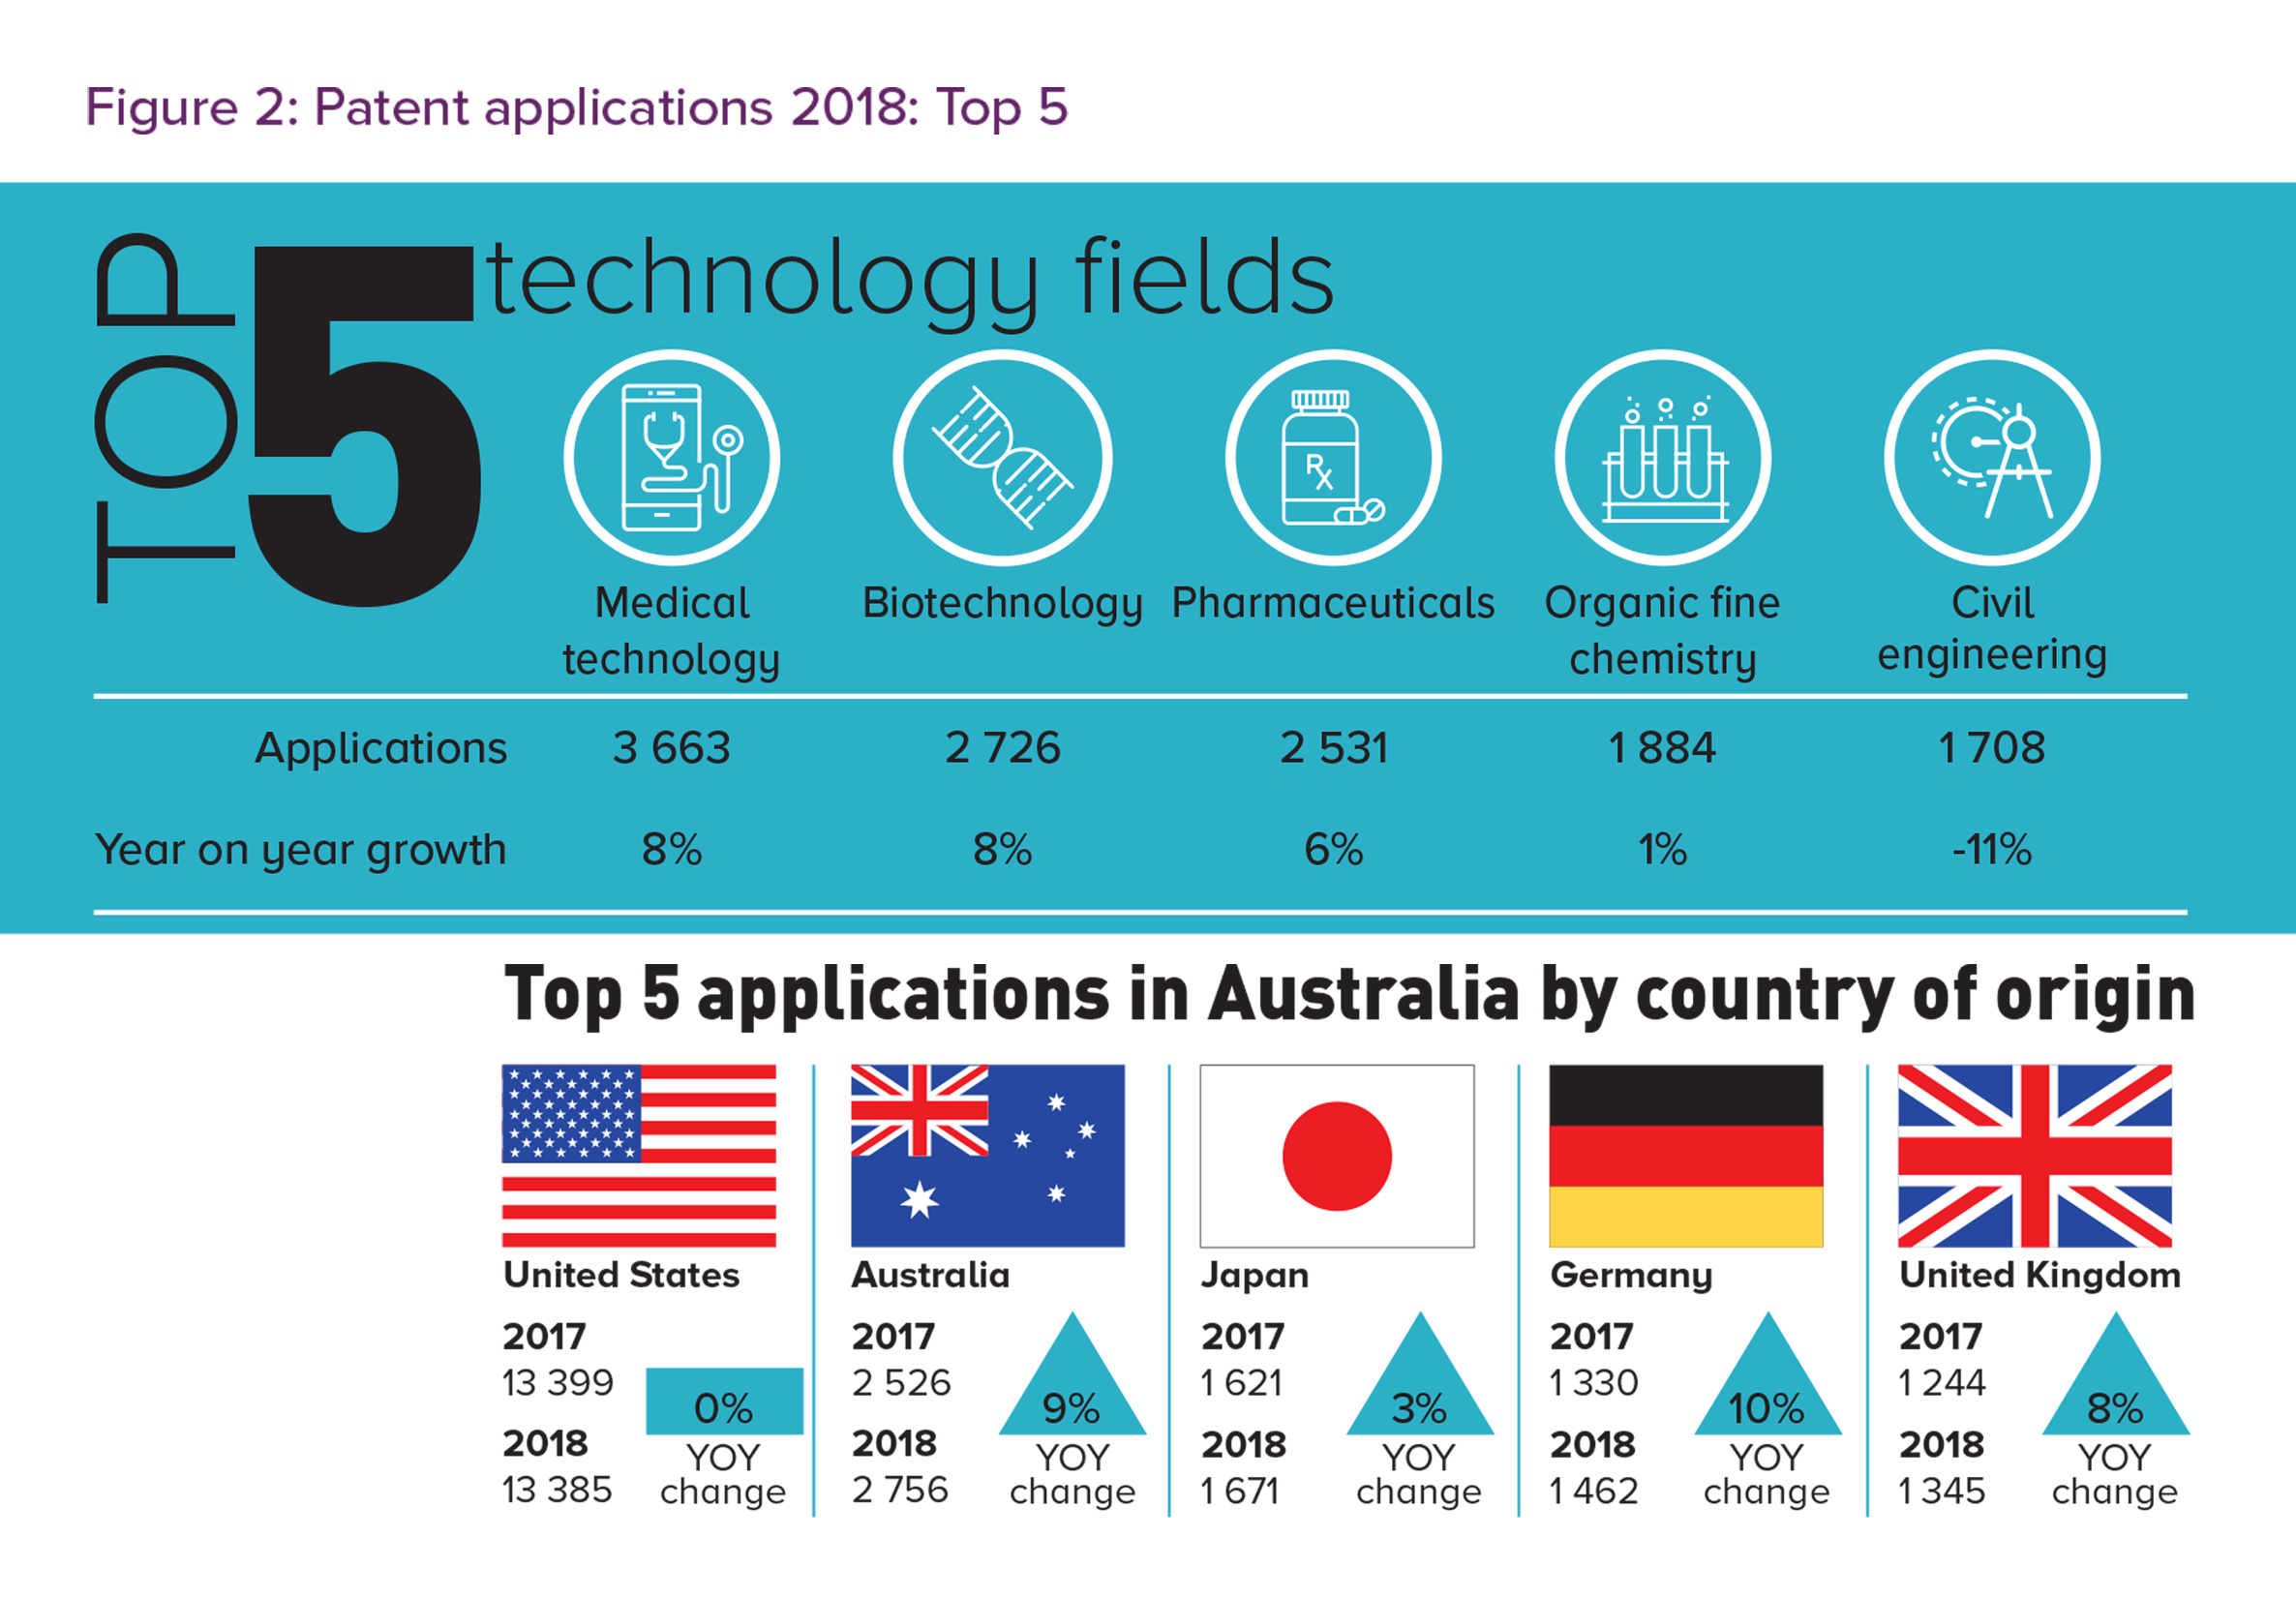 Figure 2 shows the top 5 technology fields and top 5 country of origin for patent applications in Australia for 2018